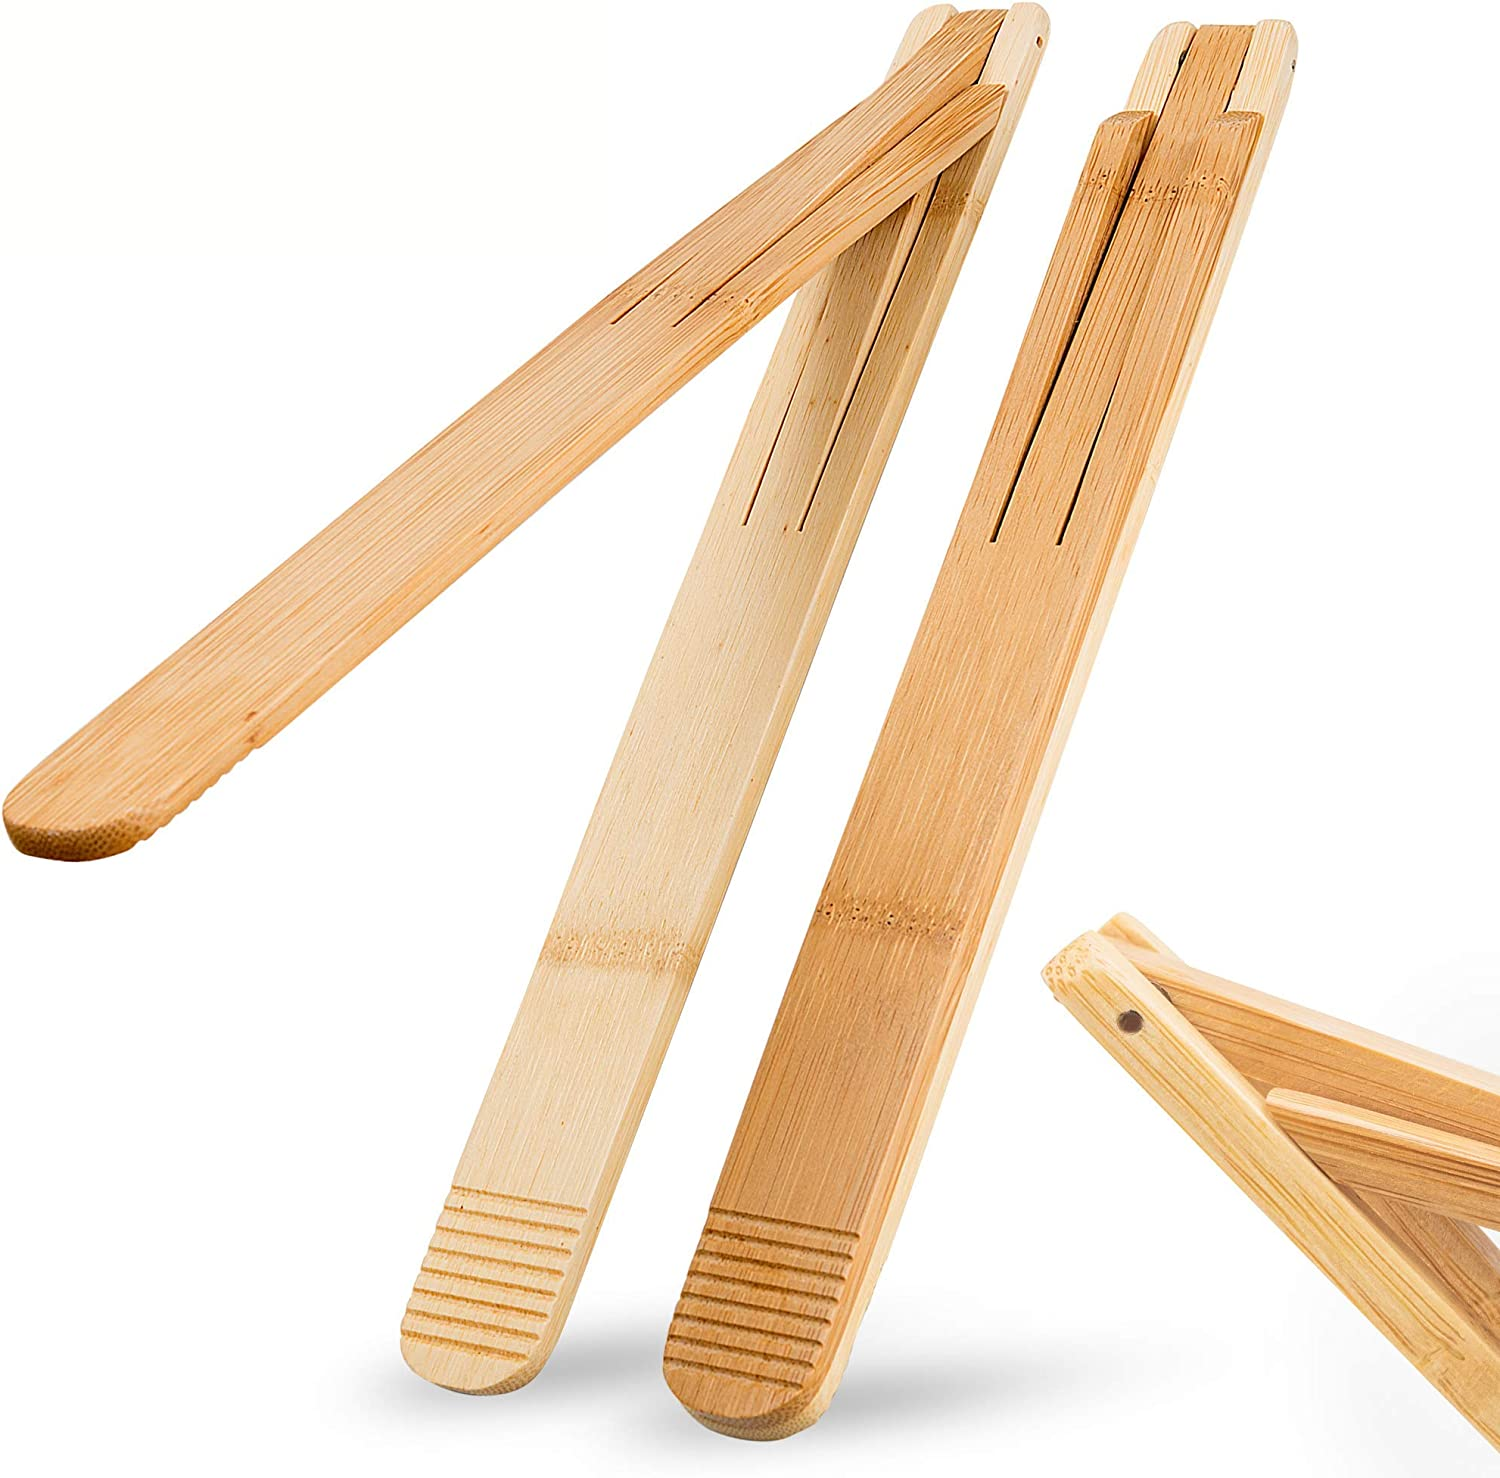 Bamboo Wood Salad Tongs with Space Saving Collapsible Spring, Enhanced Grip for Kitchen, BBQ Cooking, Camping or Grill, Foldable Carry or Storage, Flipping and Serving | Set of 2